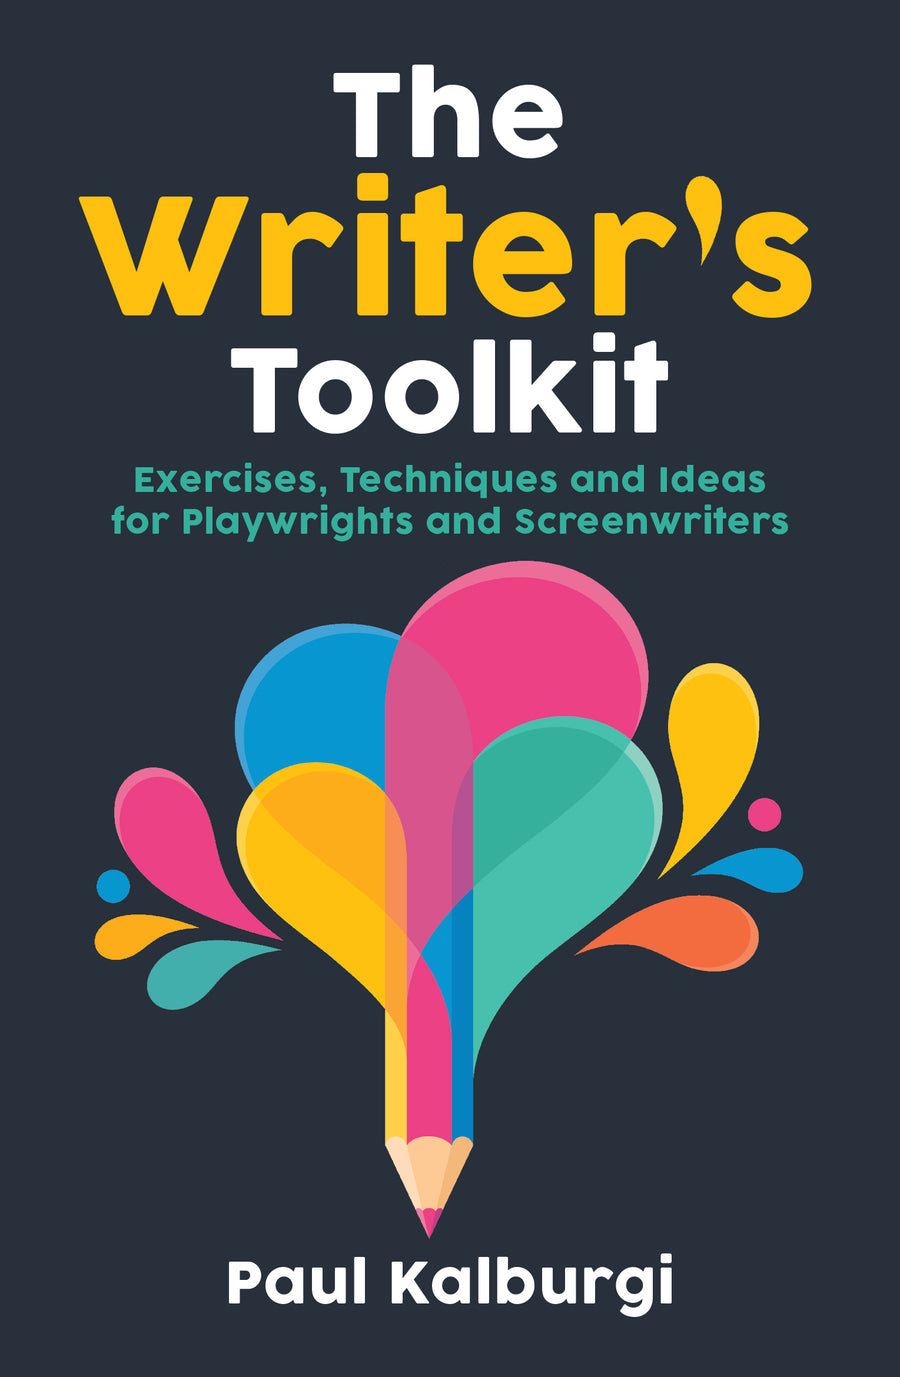 The Writer's Toolkit